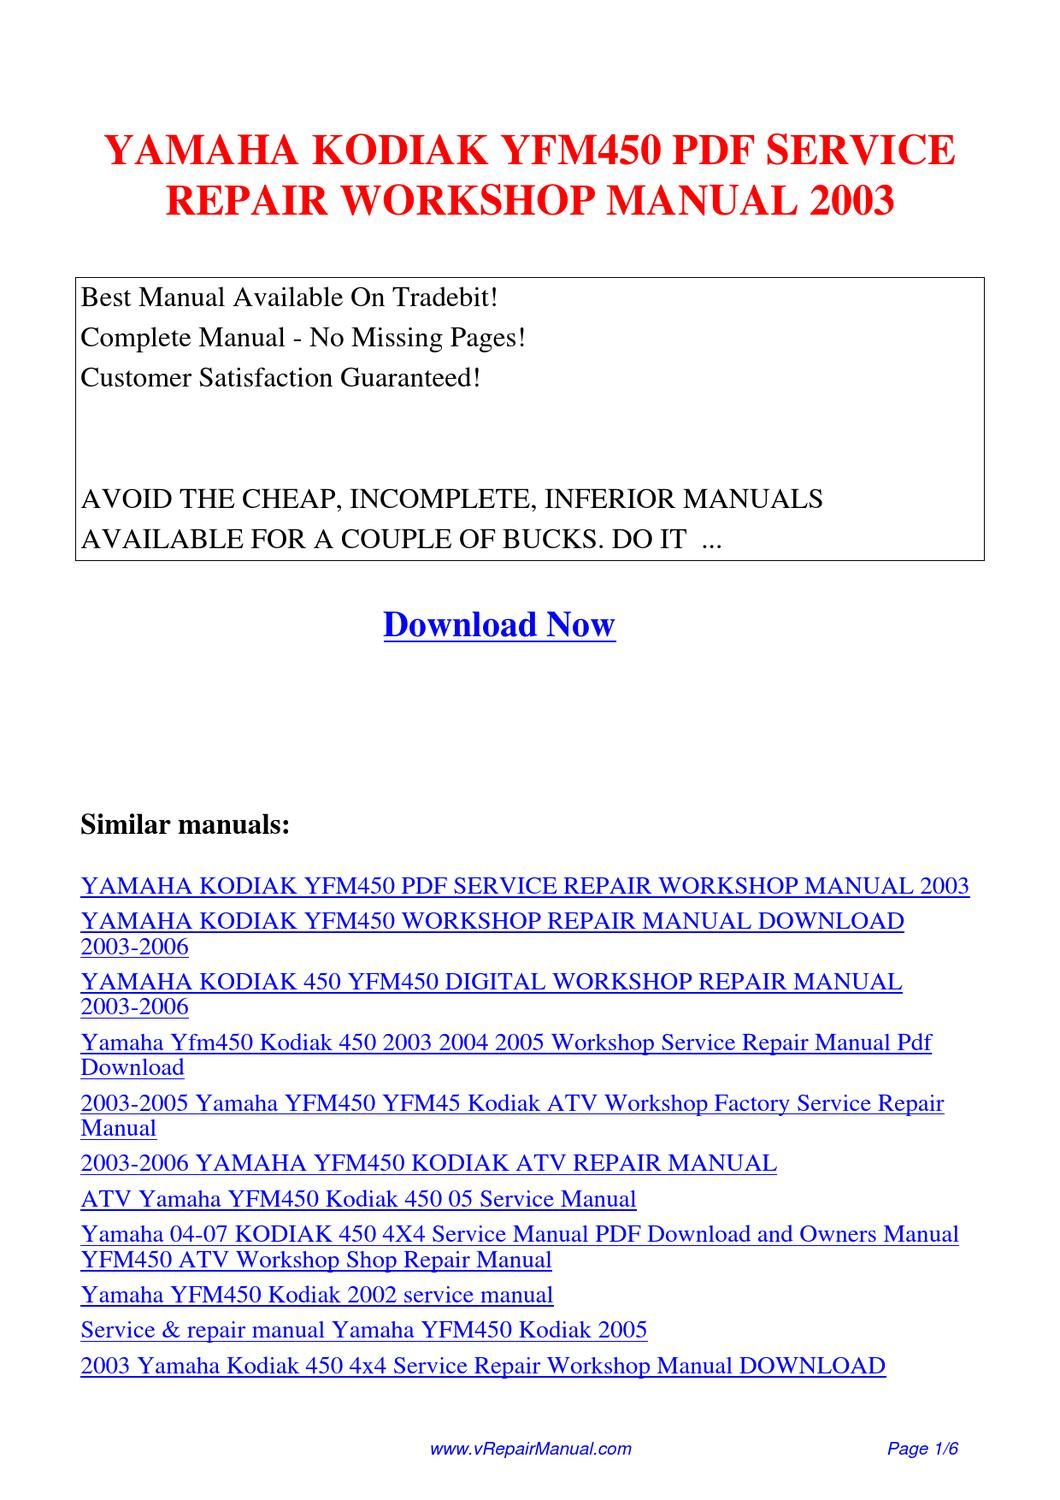 Yamaha Kodiak Yfm450 Service Repair Workshop Manual 2003 By Huang Kung